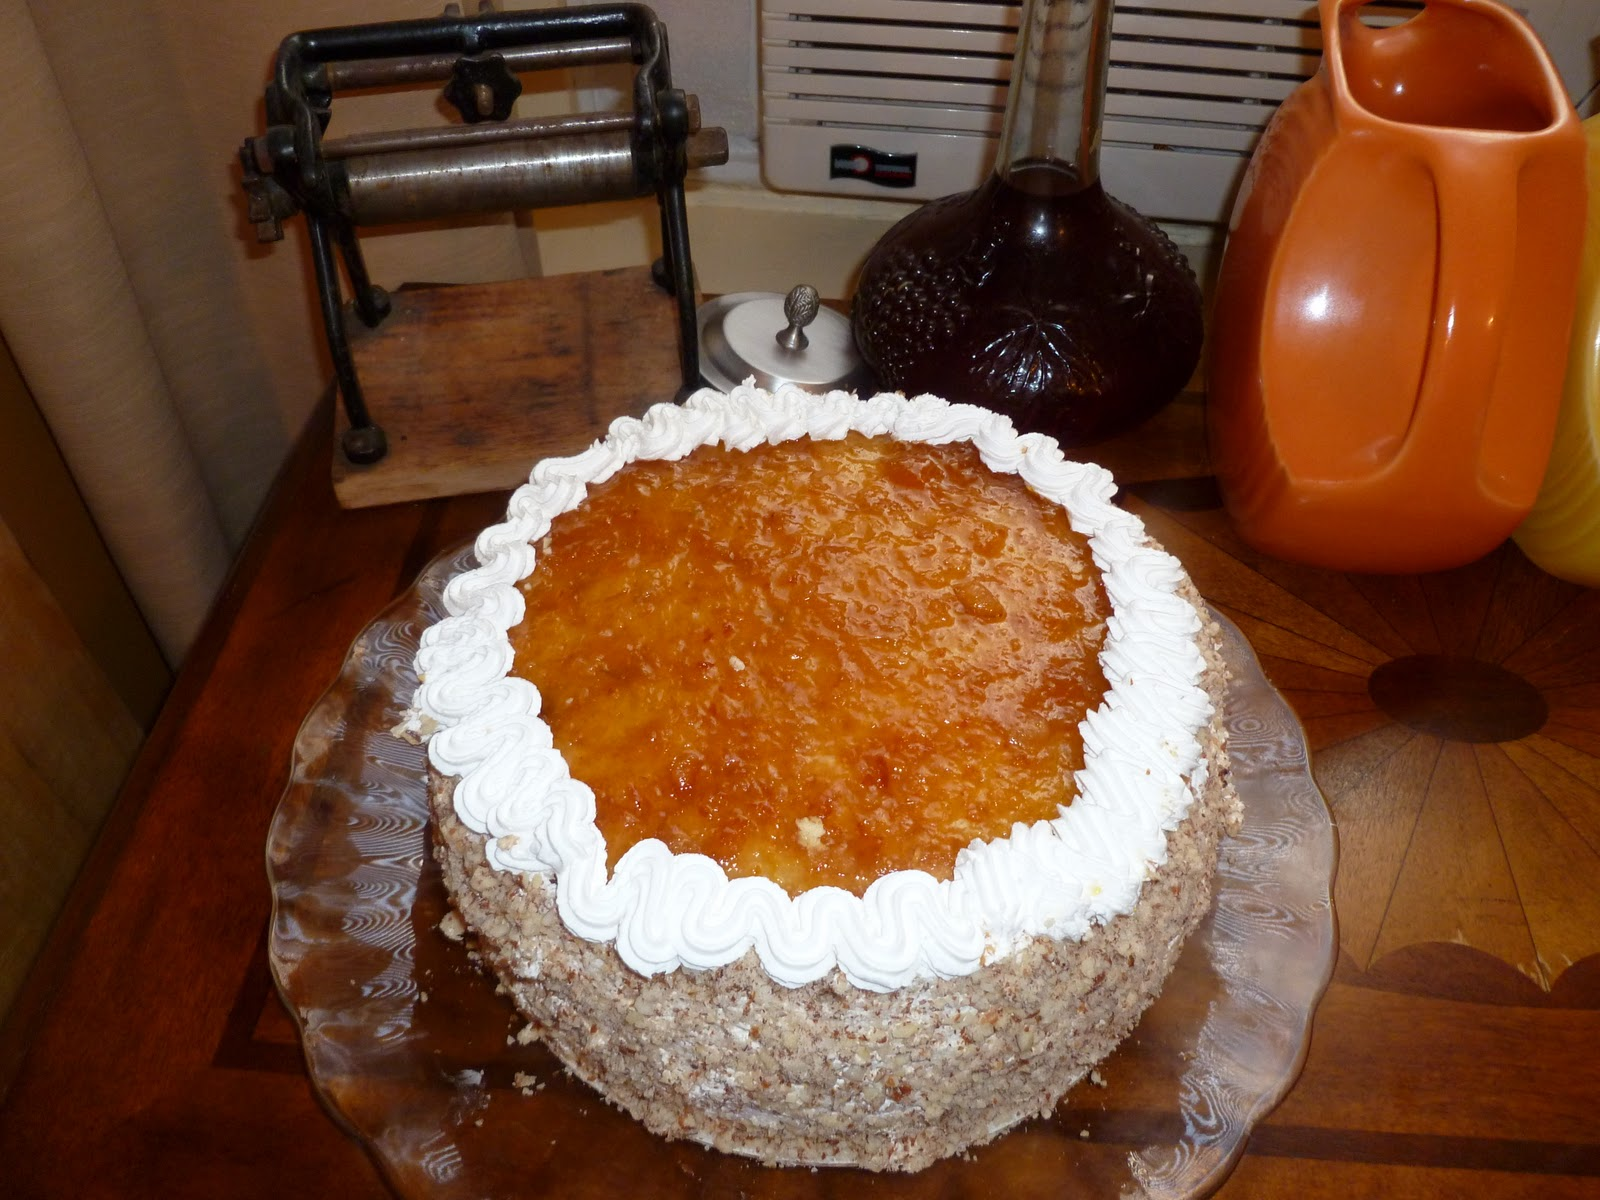 Italian Rum Cake Recipes From Scratch: I Like To Bake And Cook Blog: Eating In Nonna's Kitchen! A